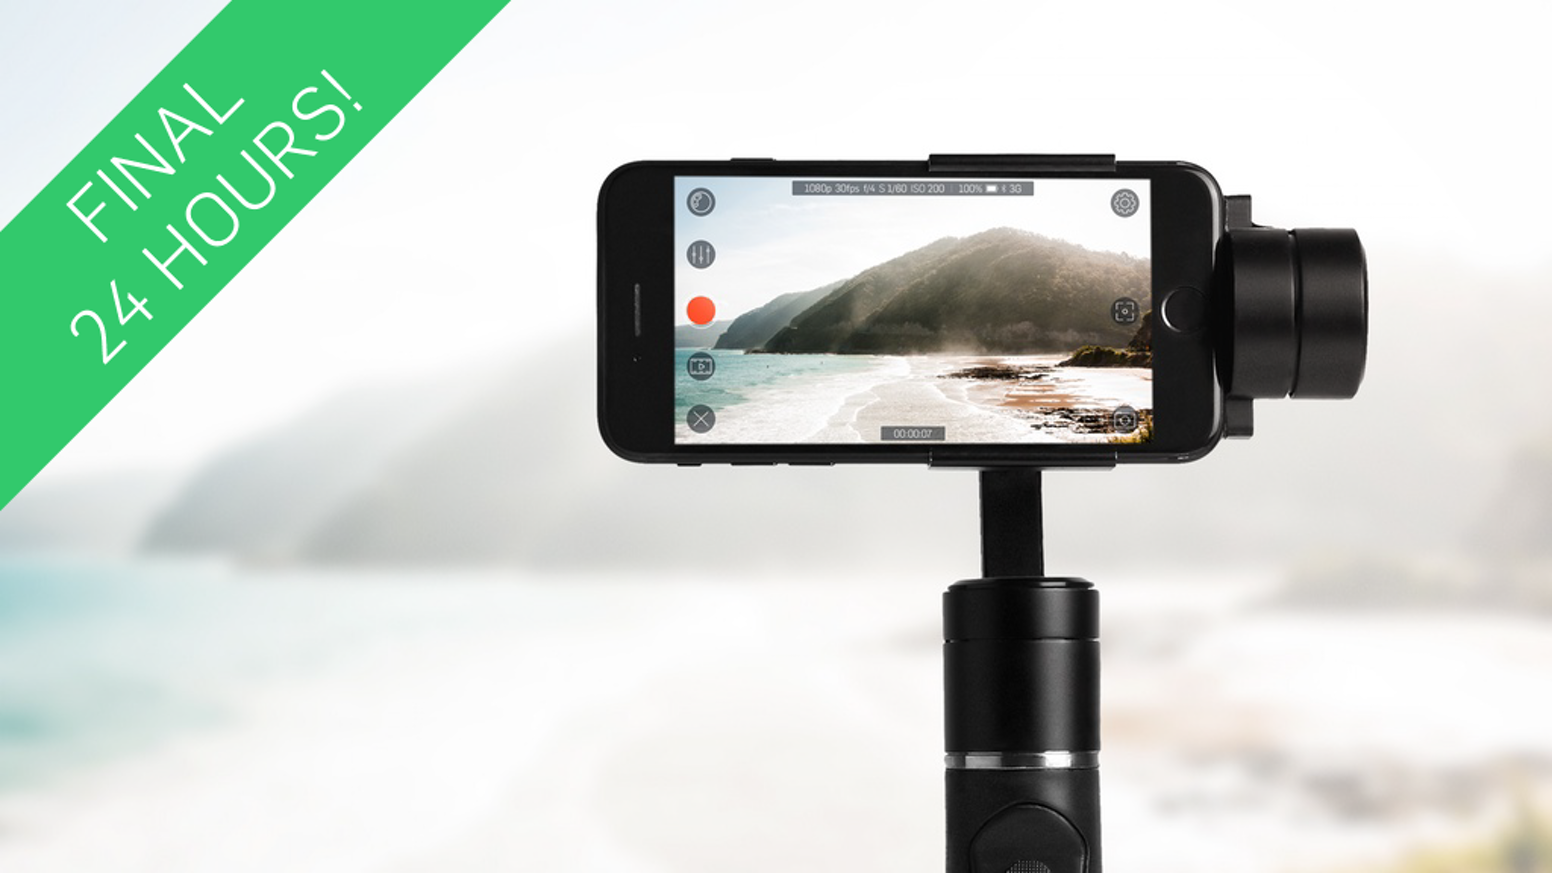 FlowMotion ONE - Capture smooth cinematic videos with your smartphone. Auto-follow tracking, motion time-lapse, and so much more.